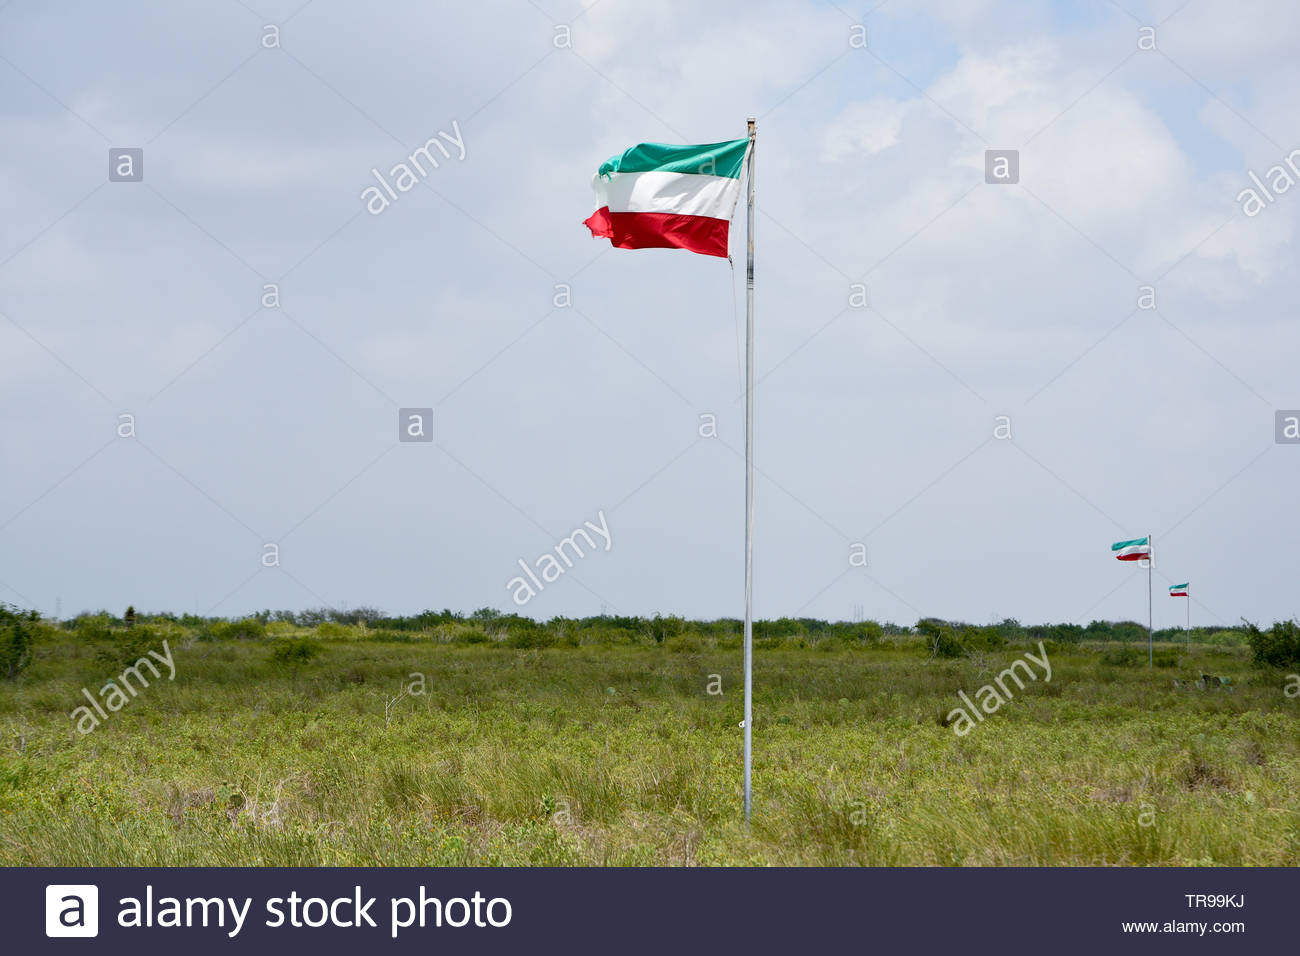 Mexican Flags Waving in the Wind. Mexican Battle Line at Palo Alto Battlefield in Brownsville Texas. Mexico Flag. Green White Red Mexico Flag Waving - Stock Image